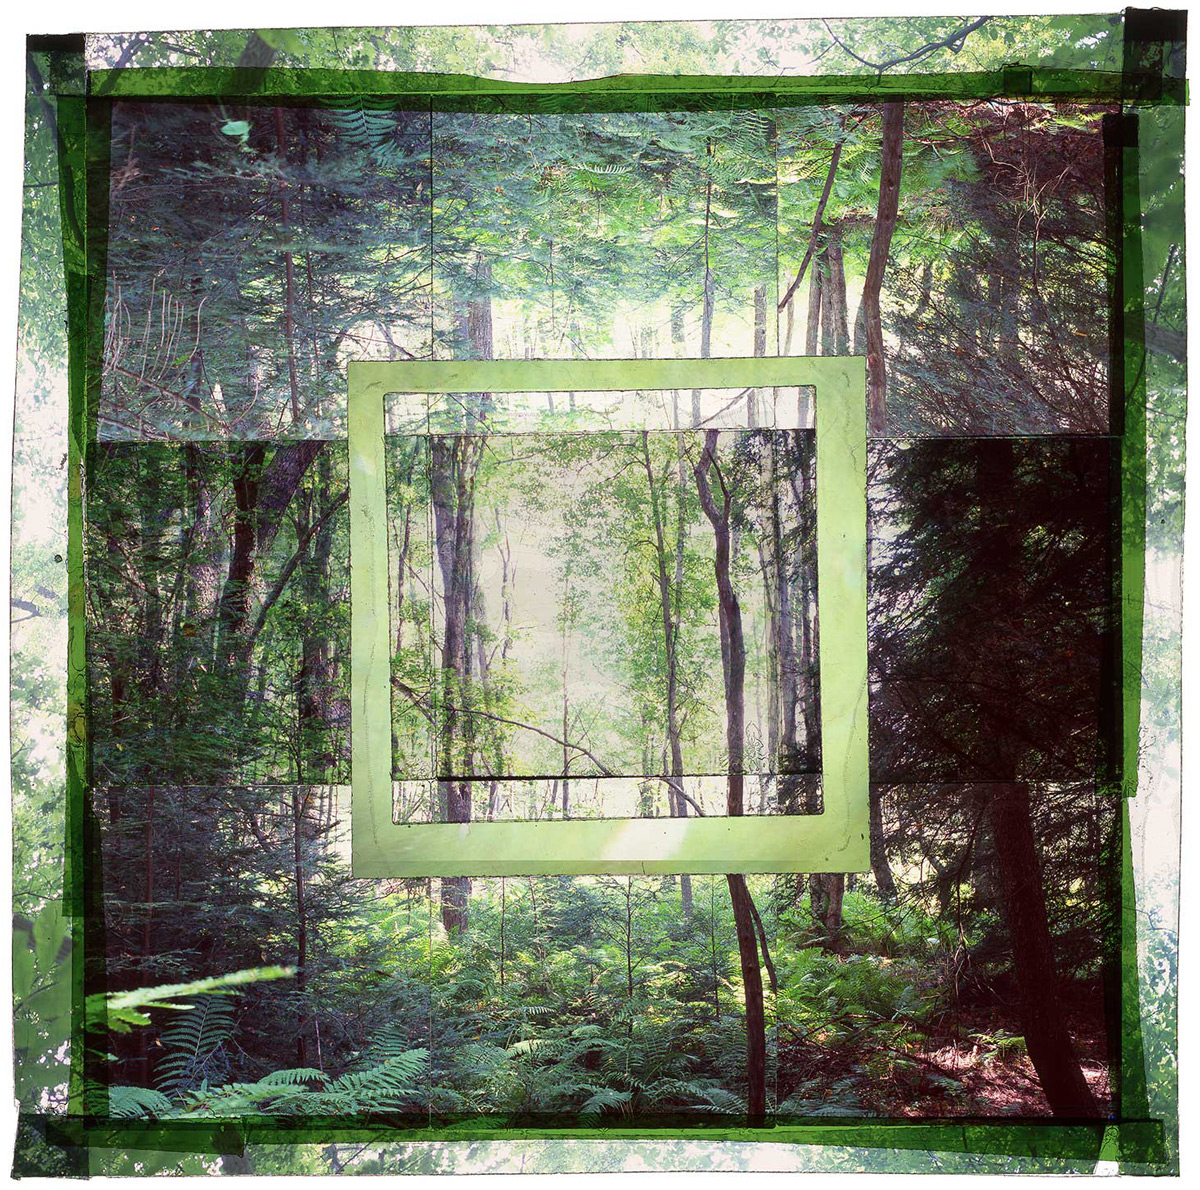 """GARRETT SP, 1 • 24""""x 24"""" • GICLEE PRINT FROM TRANSPARENCY FILM COMPOSITION"""